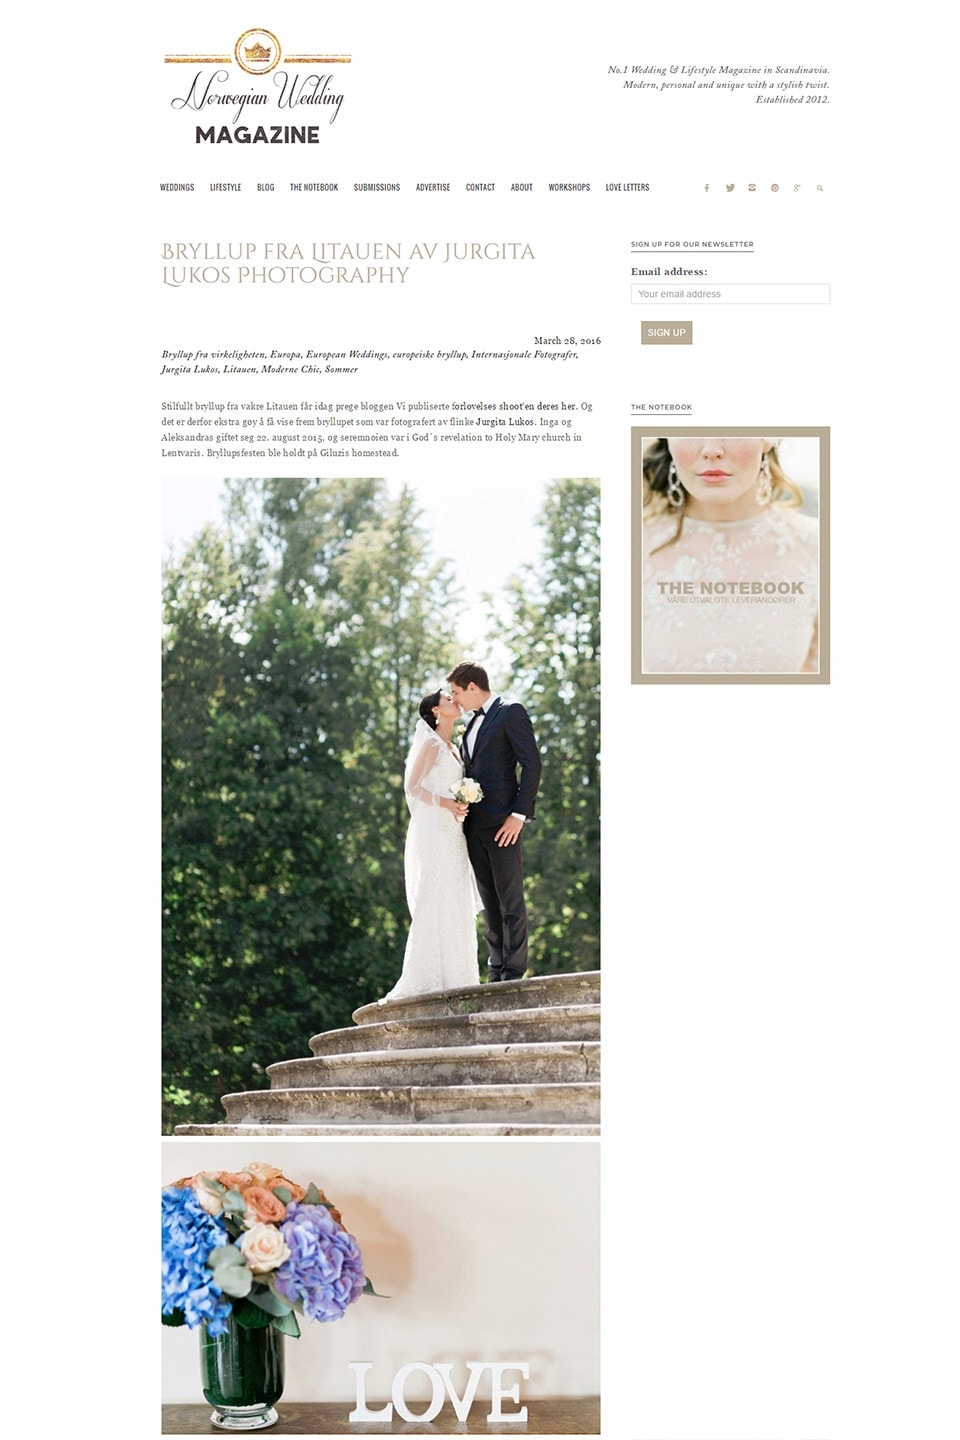 Bryllup fra Litauen av Jurgita Lukos Photography   Norwegian Wedding Magazinefb